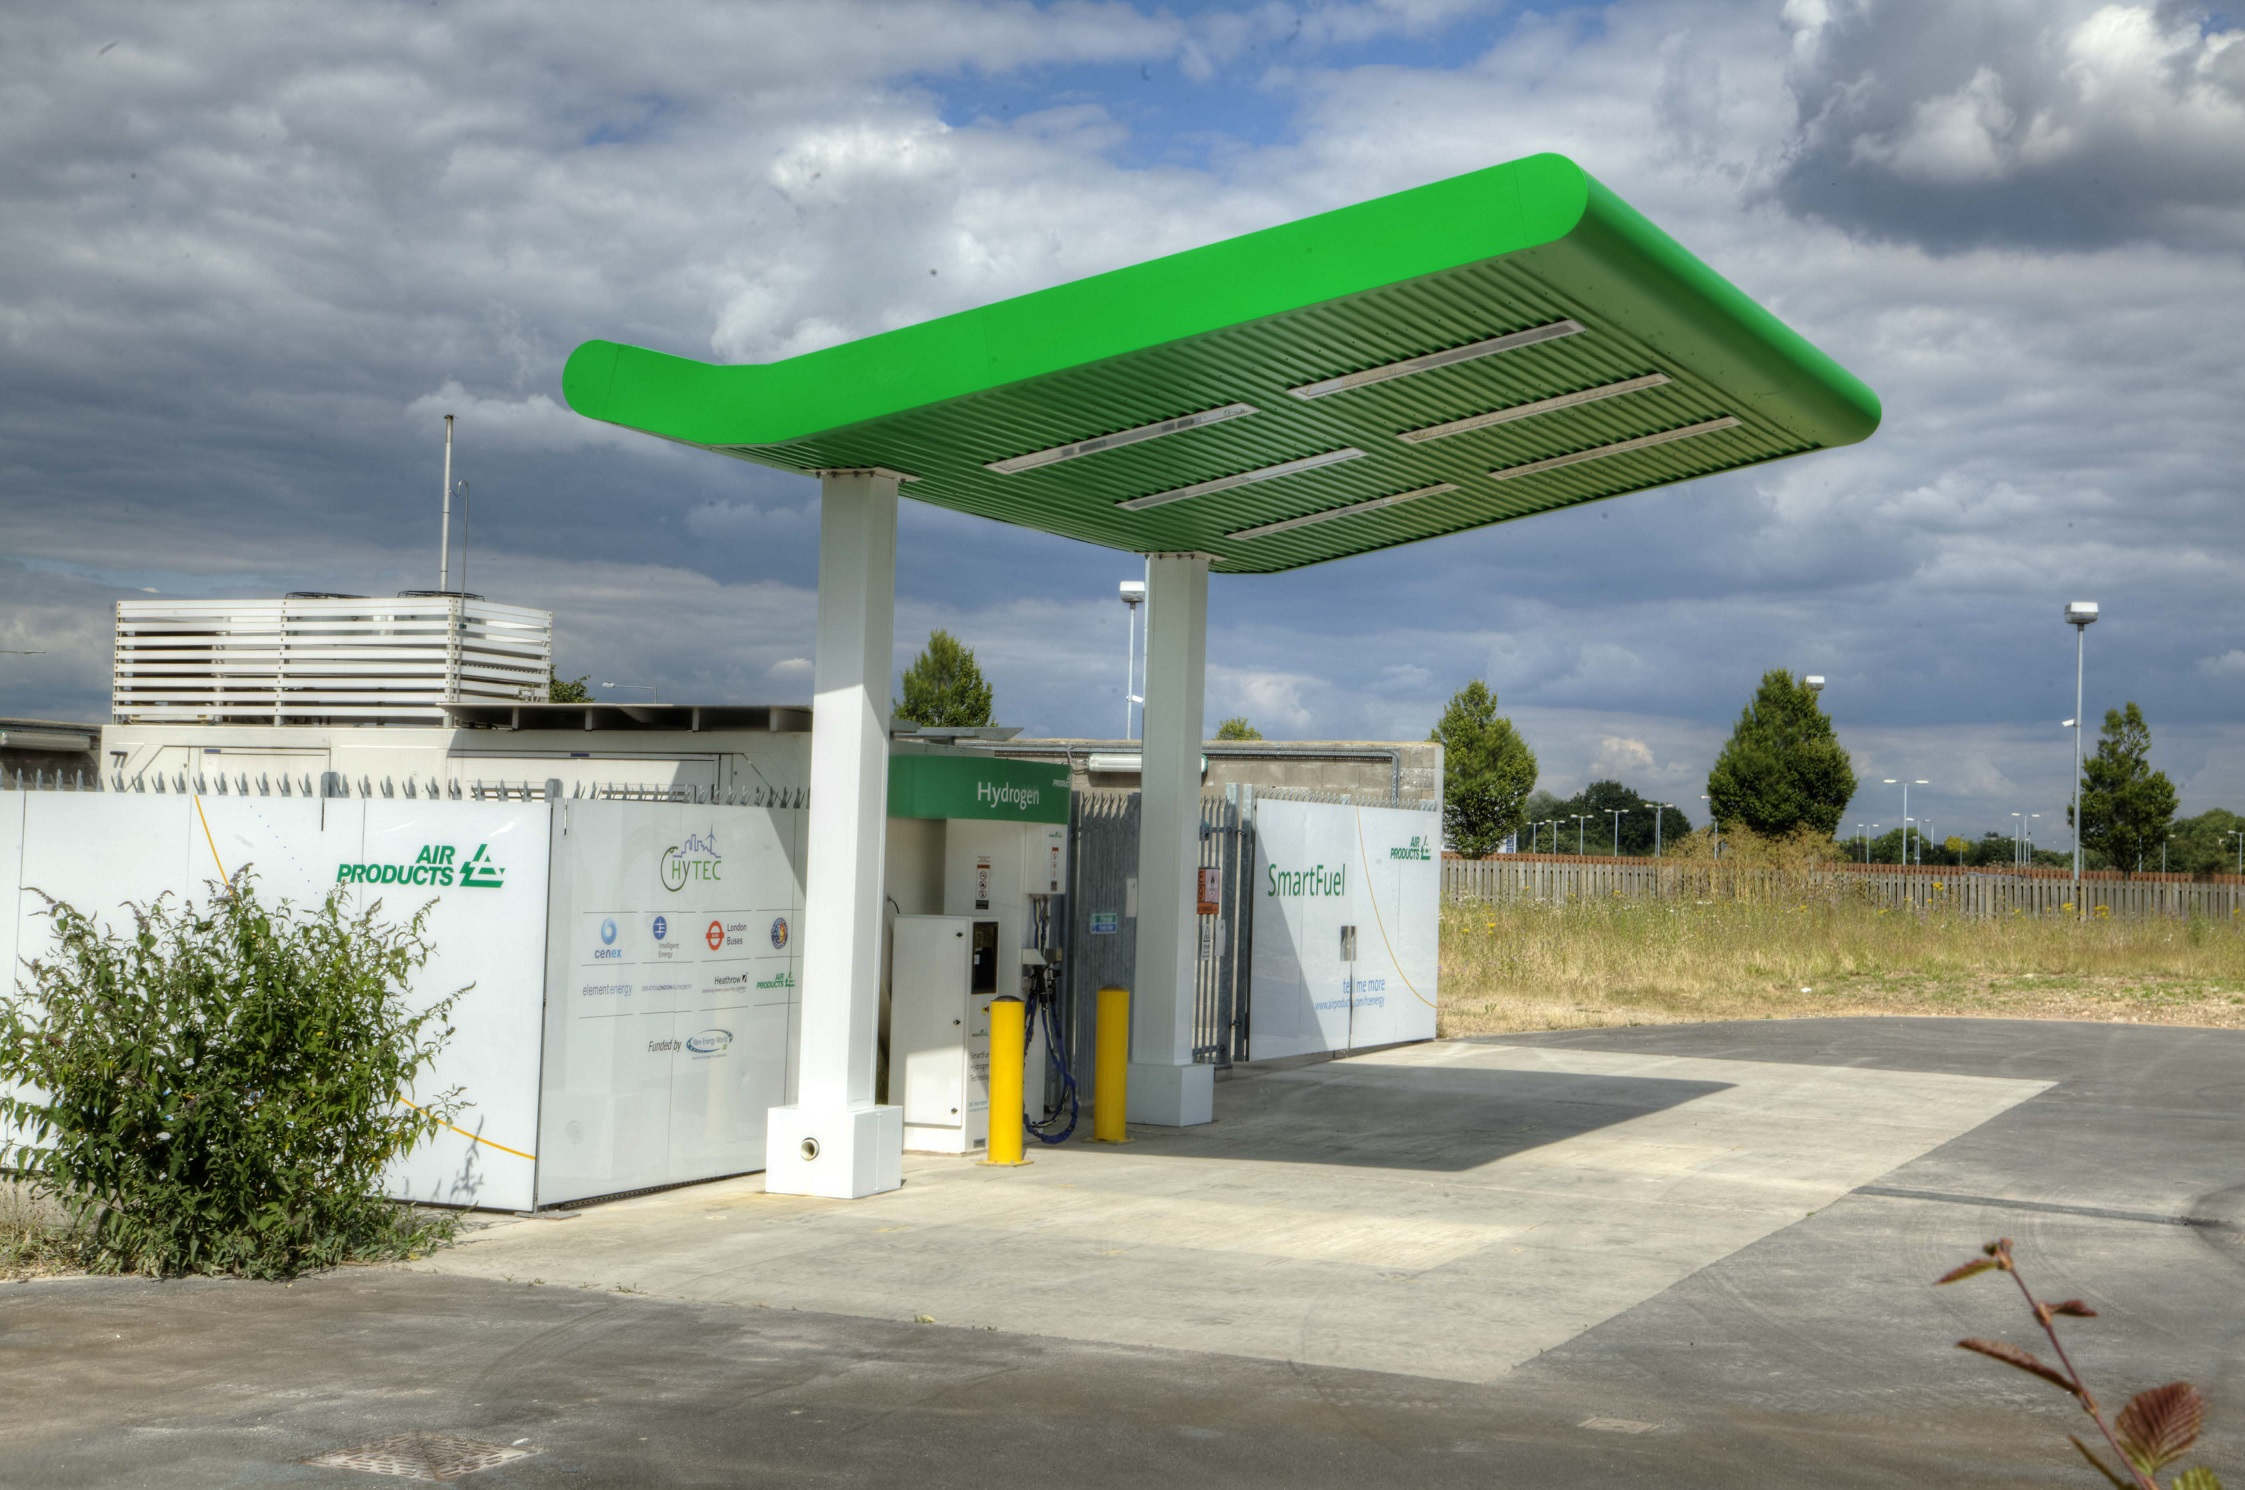 Global-MSI completes Hydrogen Filling Station canopy